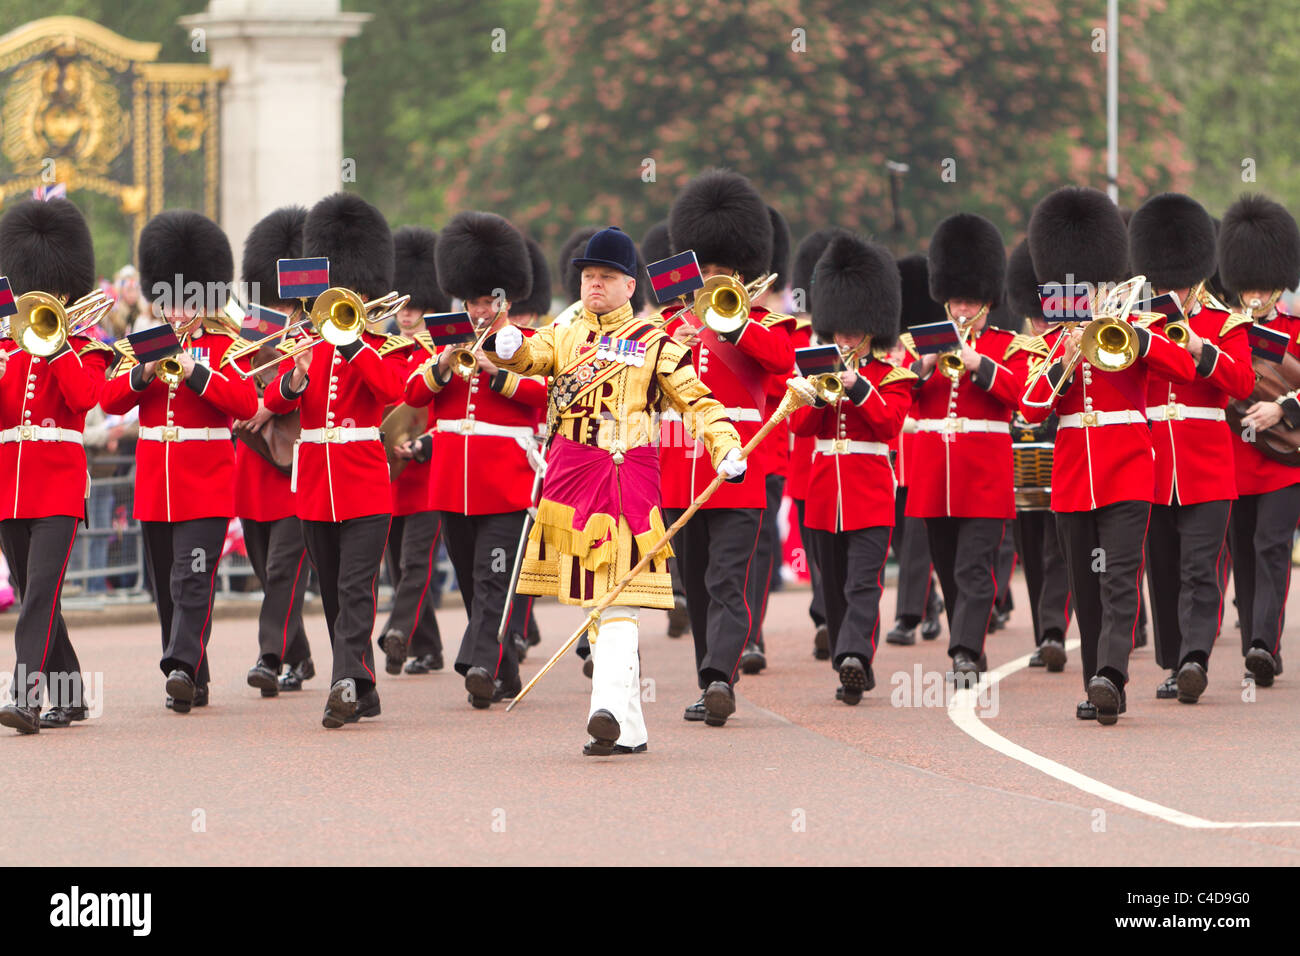 concert photos massed royal stock marines photo images band alamy at her marine the by in museum outdoor eastney majesties bands